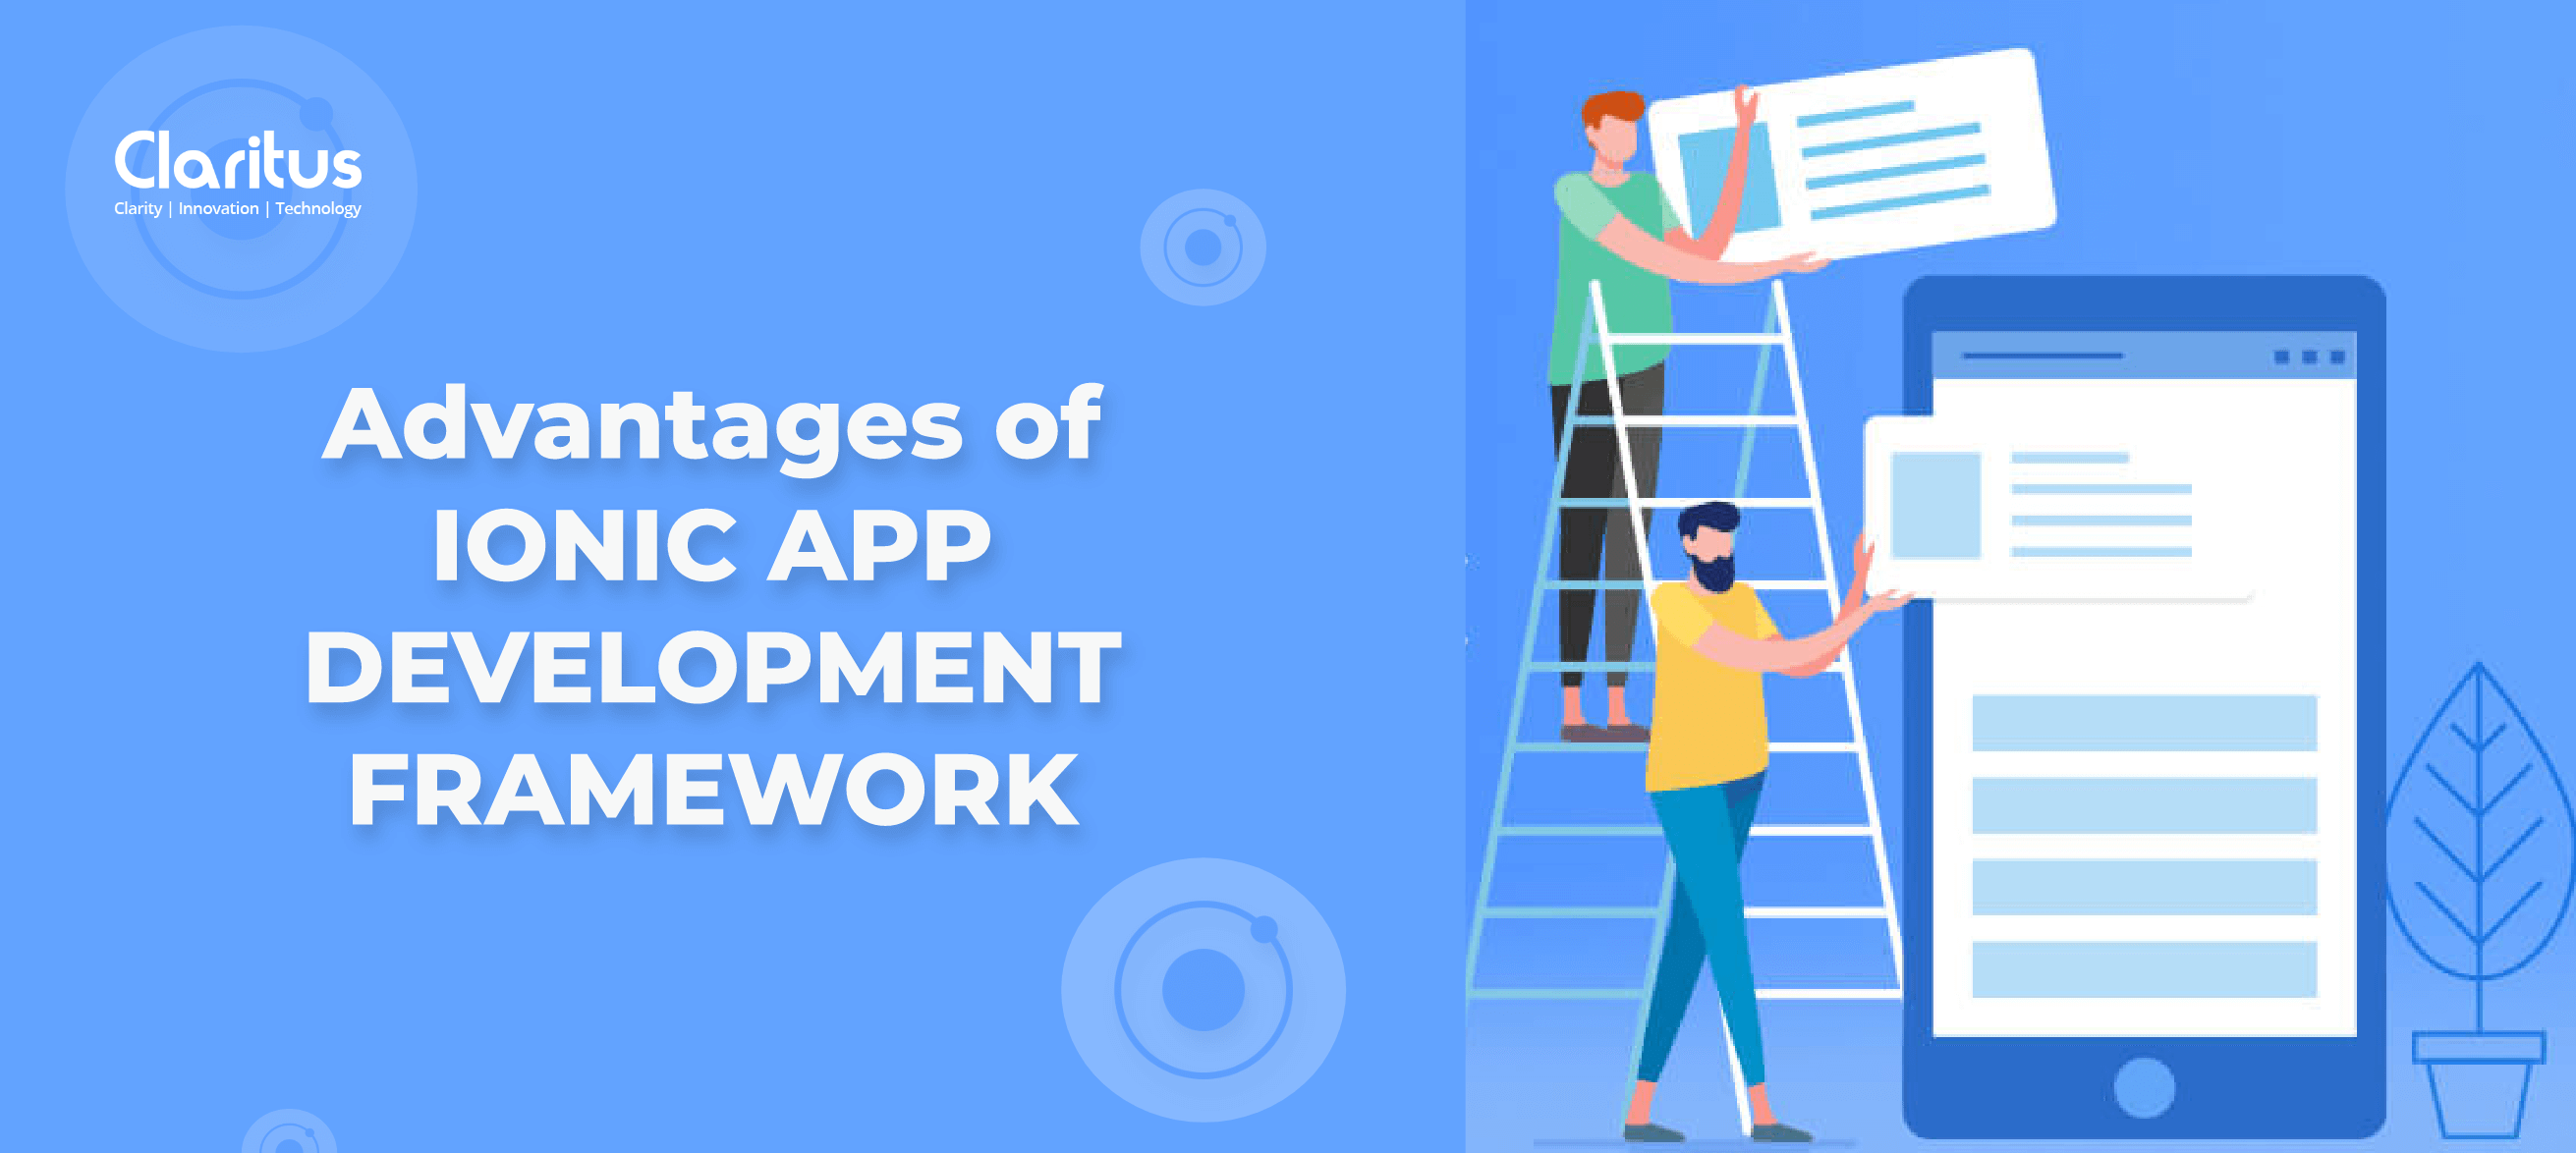 Advantages Of Ionic App Development Framework